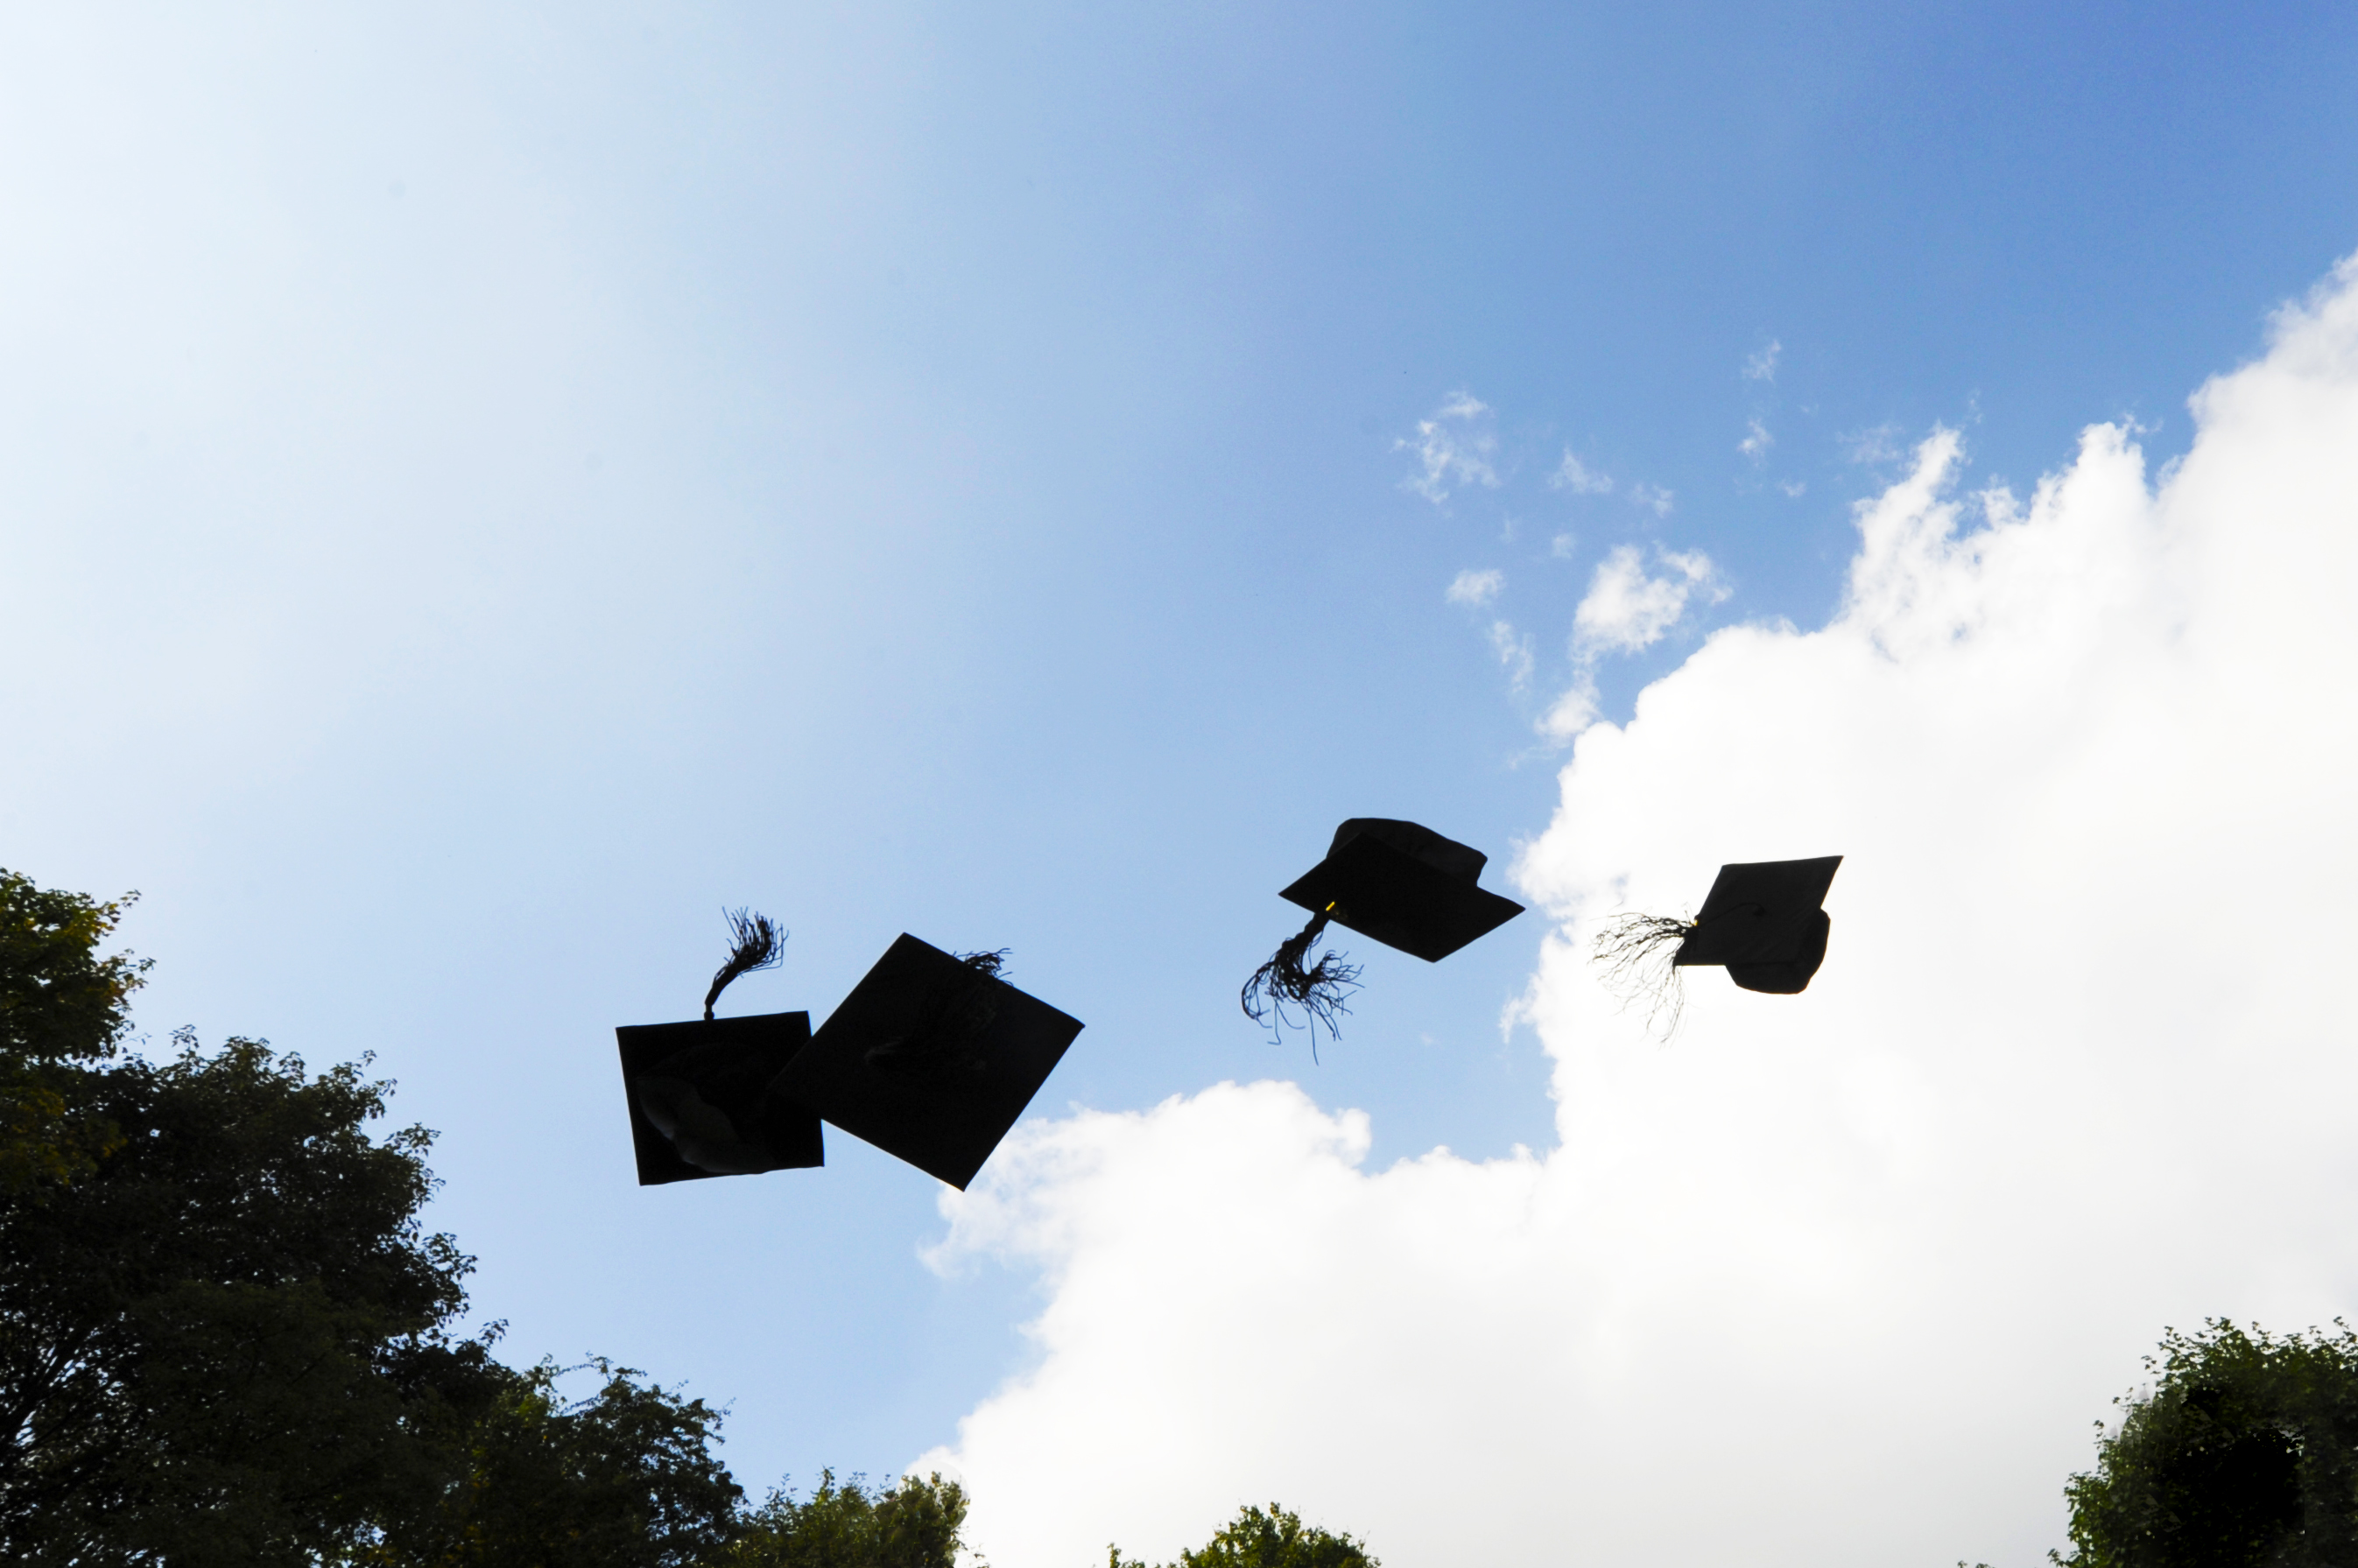 Four black graduation caps are thrown in the air.